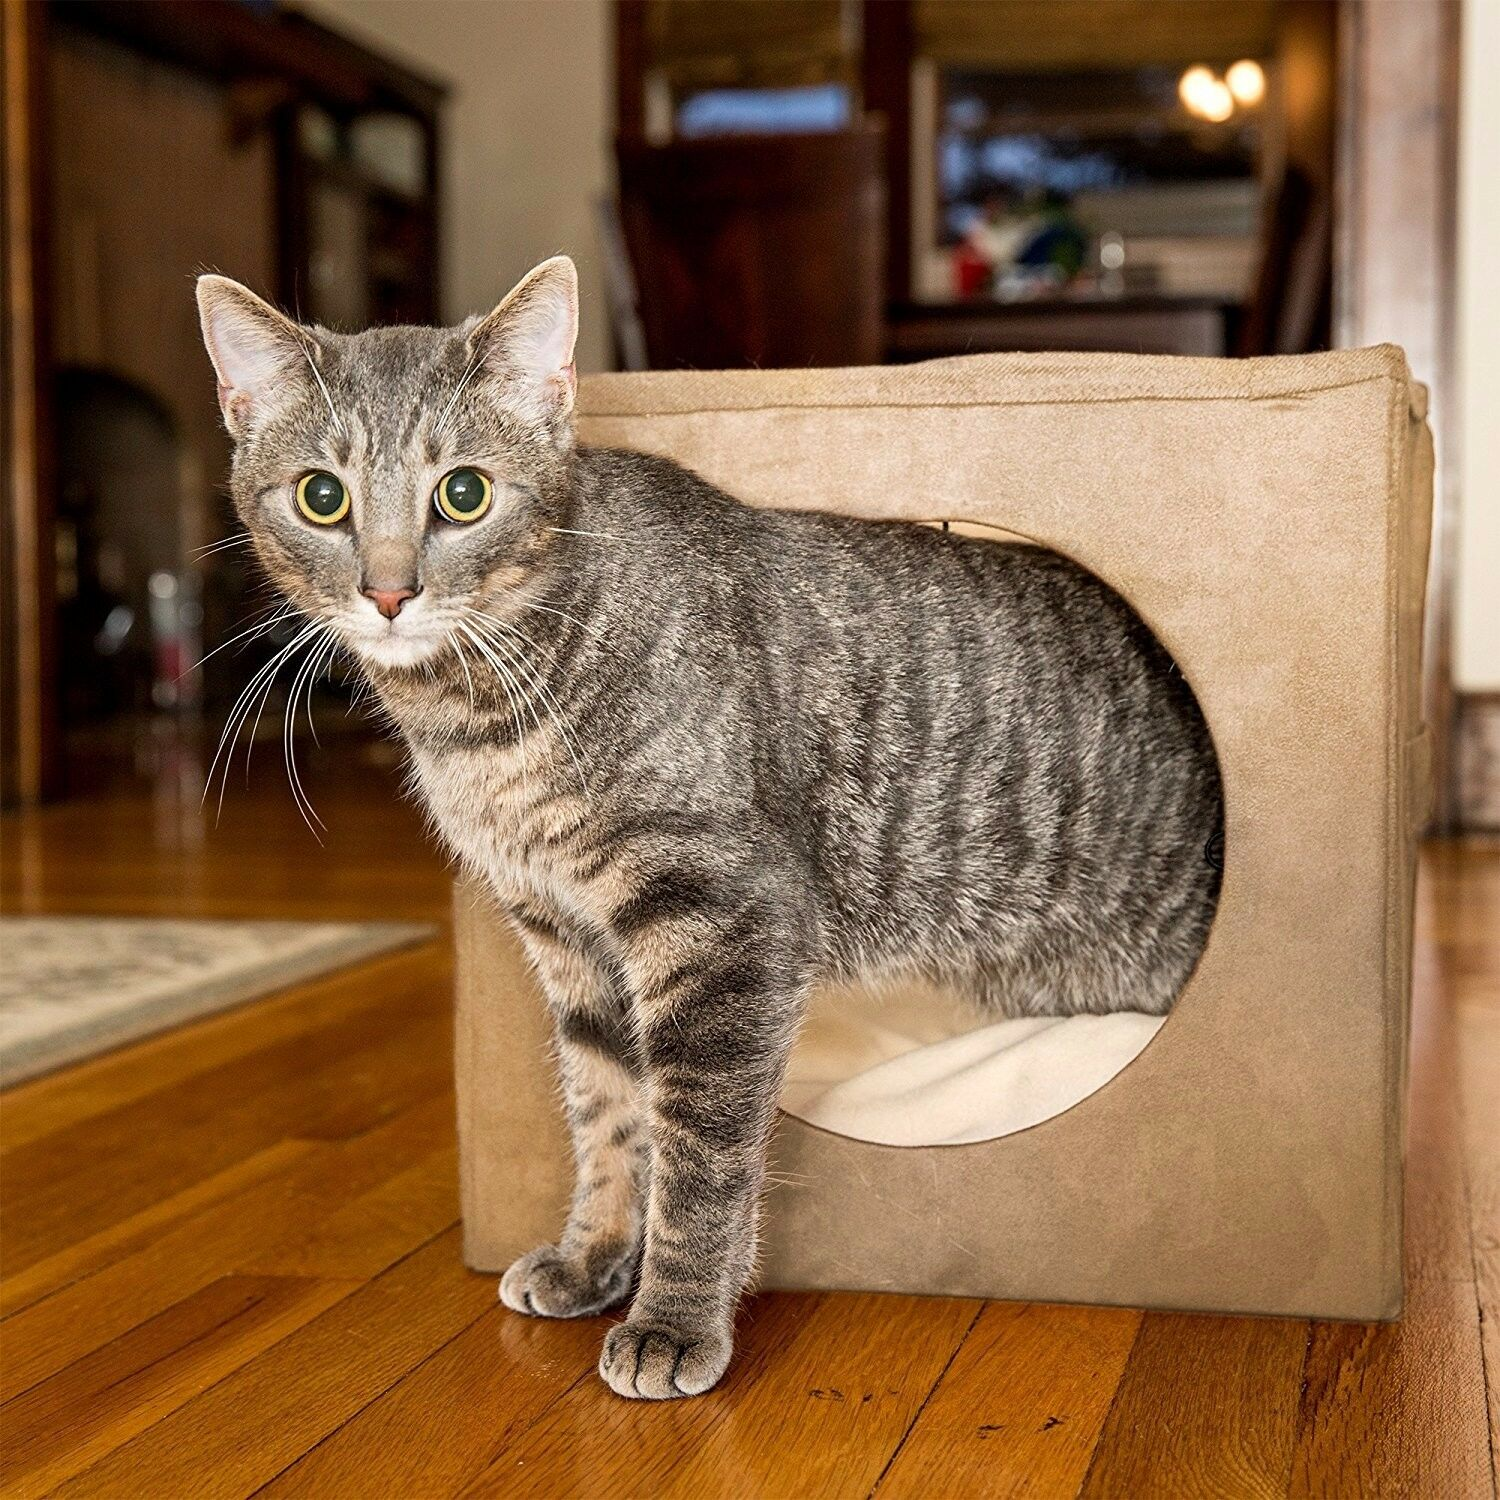 Kitty Zen Den Cat Hideaway - Best Used For A Comfortable Covered Cat Bed, Warm C